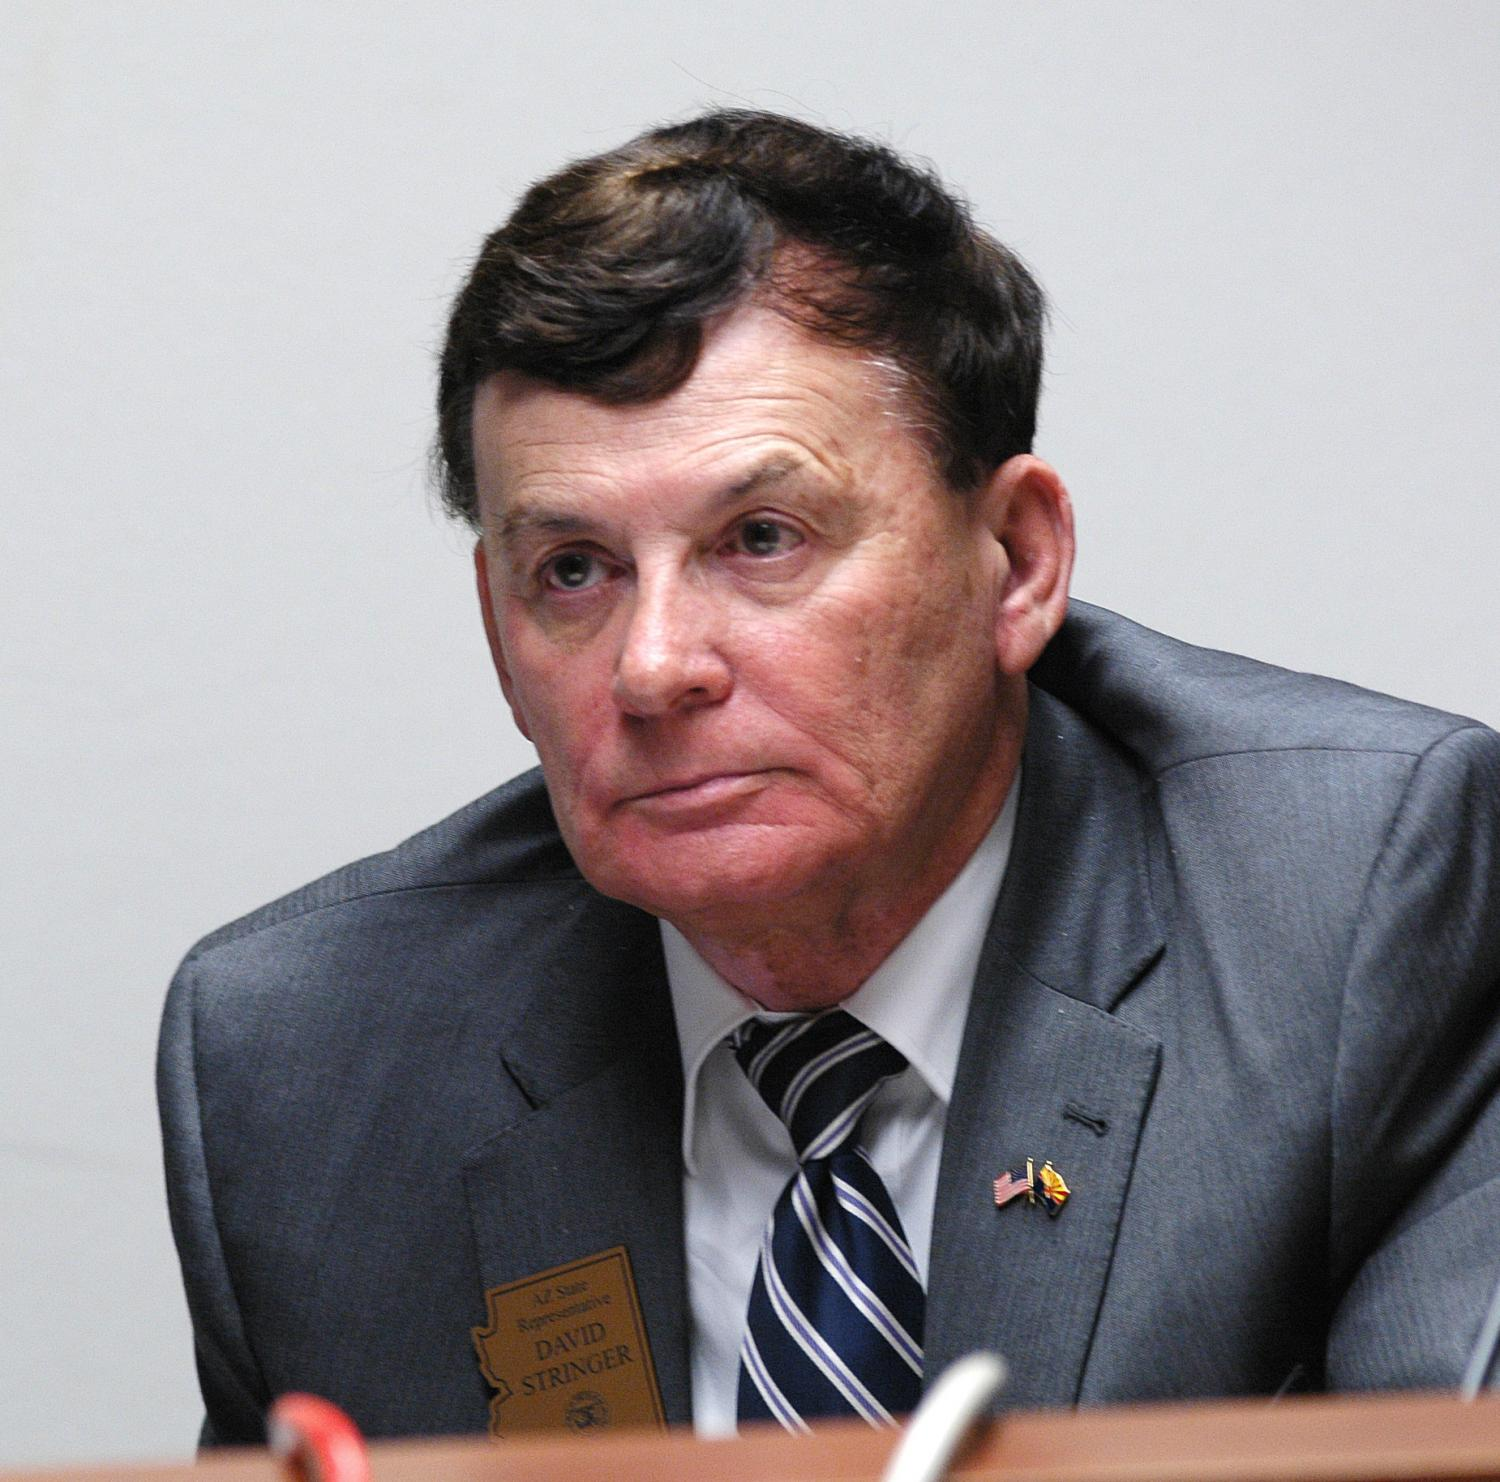 Rep. David Stringer